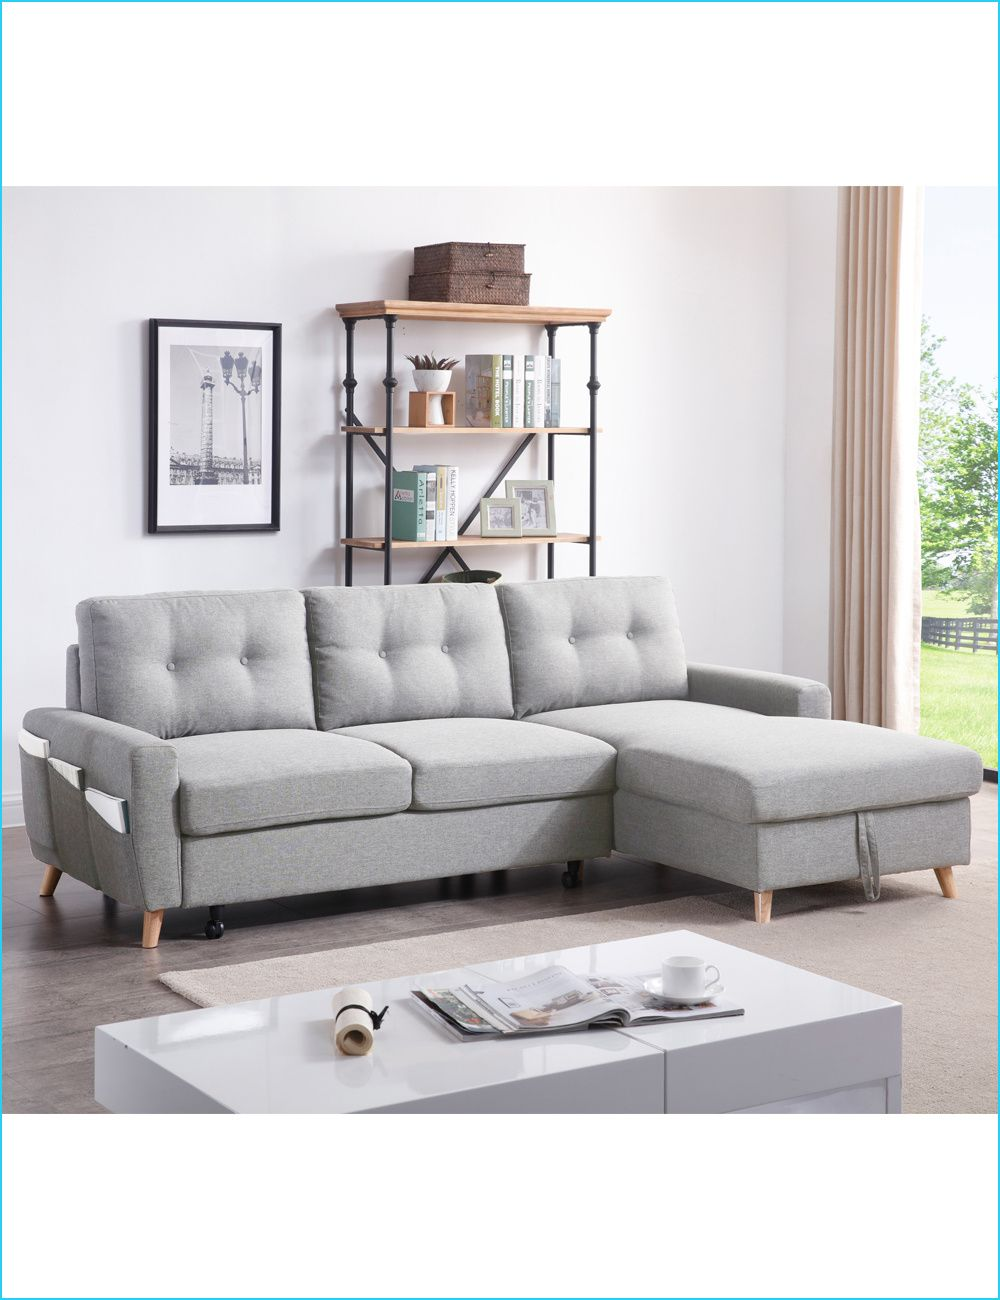 8 Precious Eck Schlafsofa In 2020 Room Sectional Couch